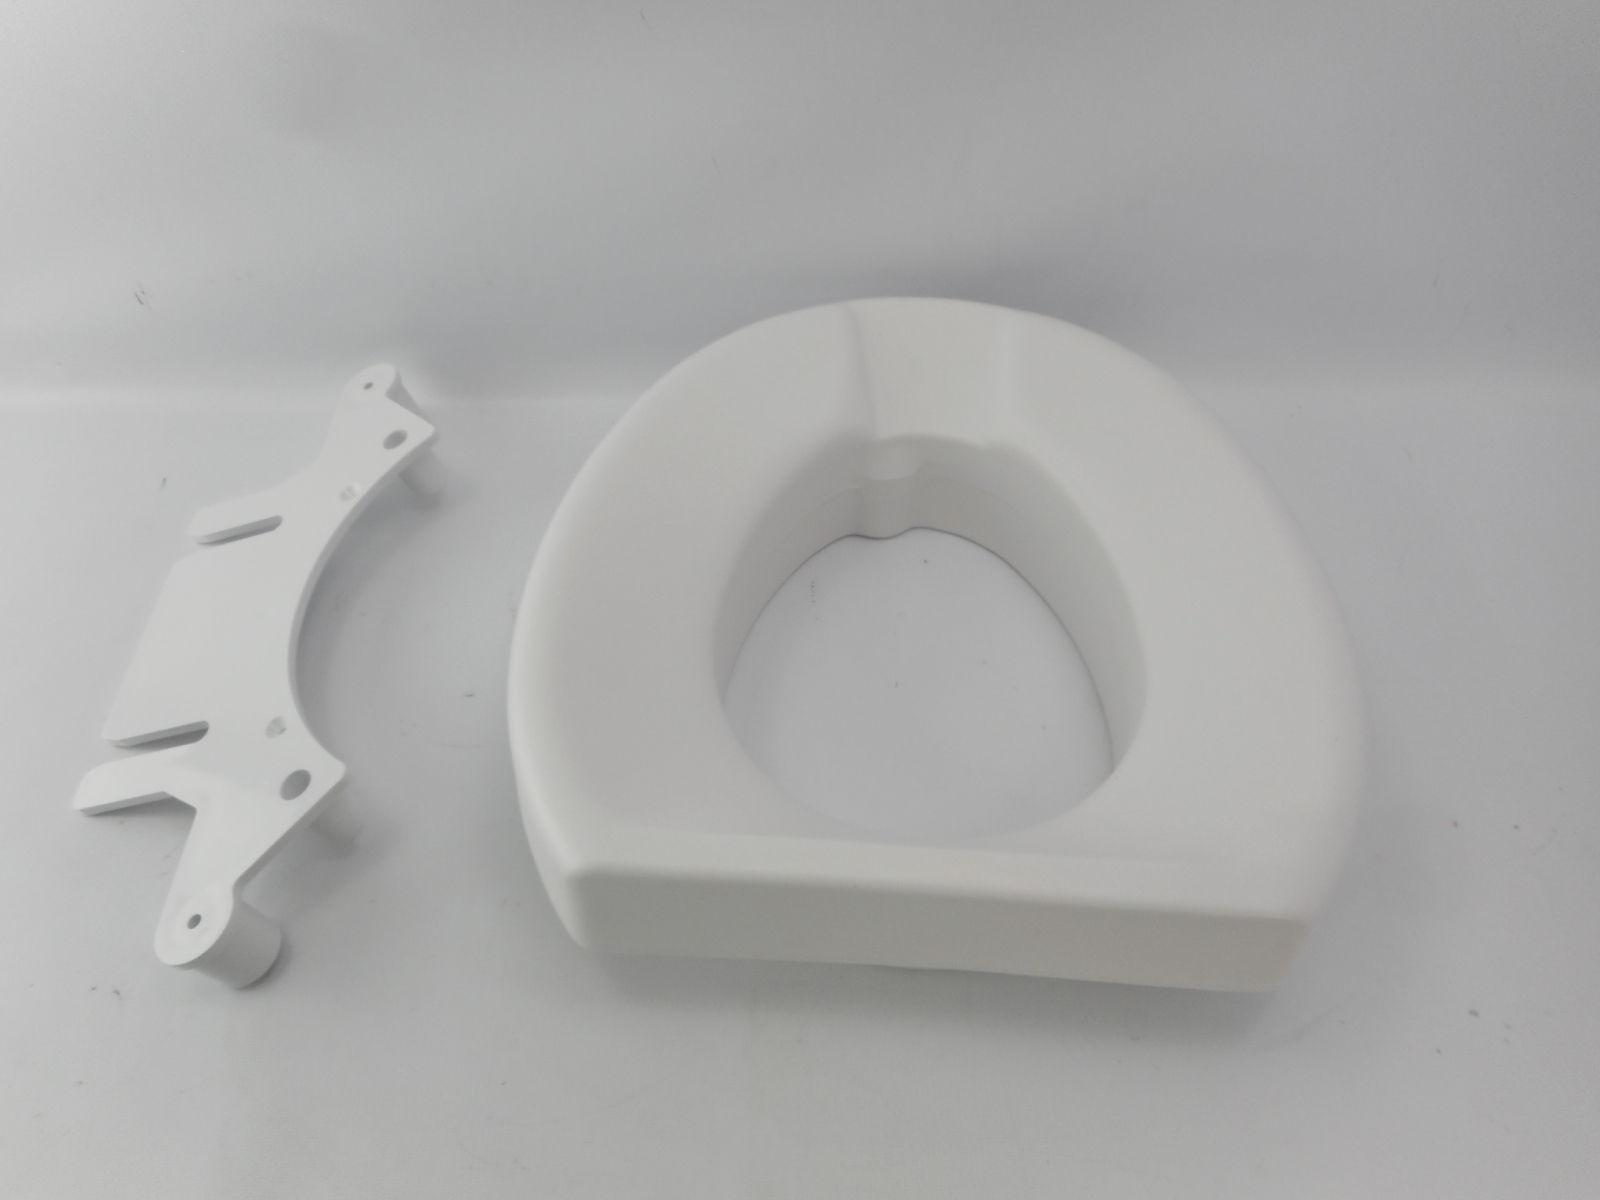 725831002 2in elevated toilet seat for both